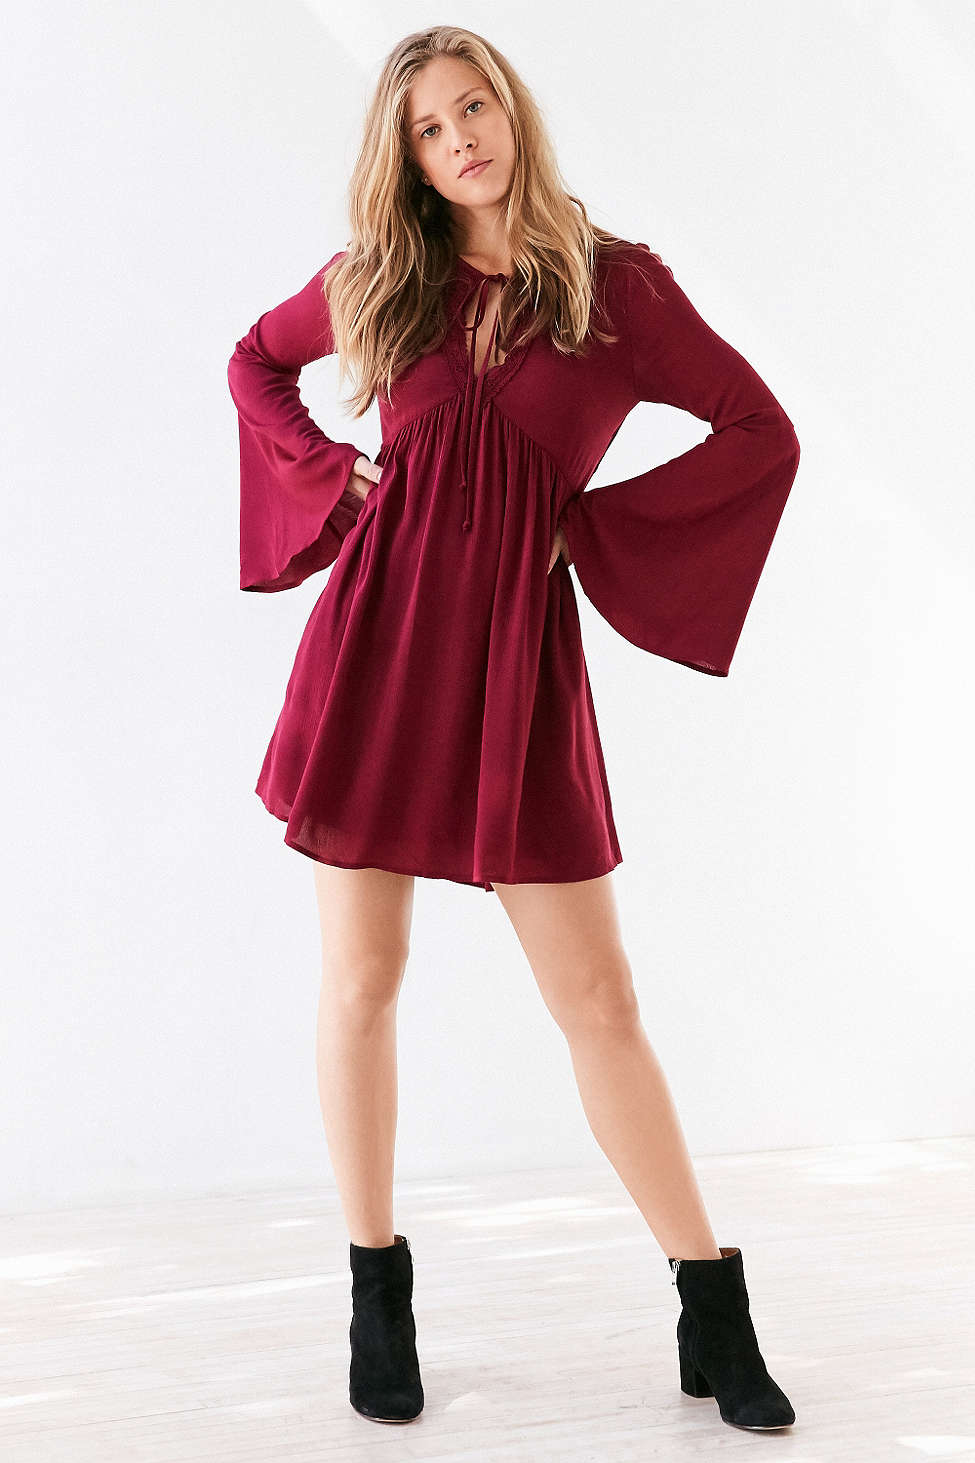 dresses to wear to fall wedding photo - 1